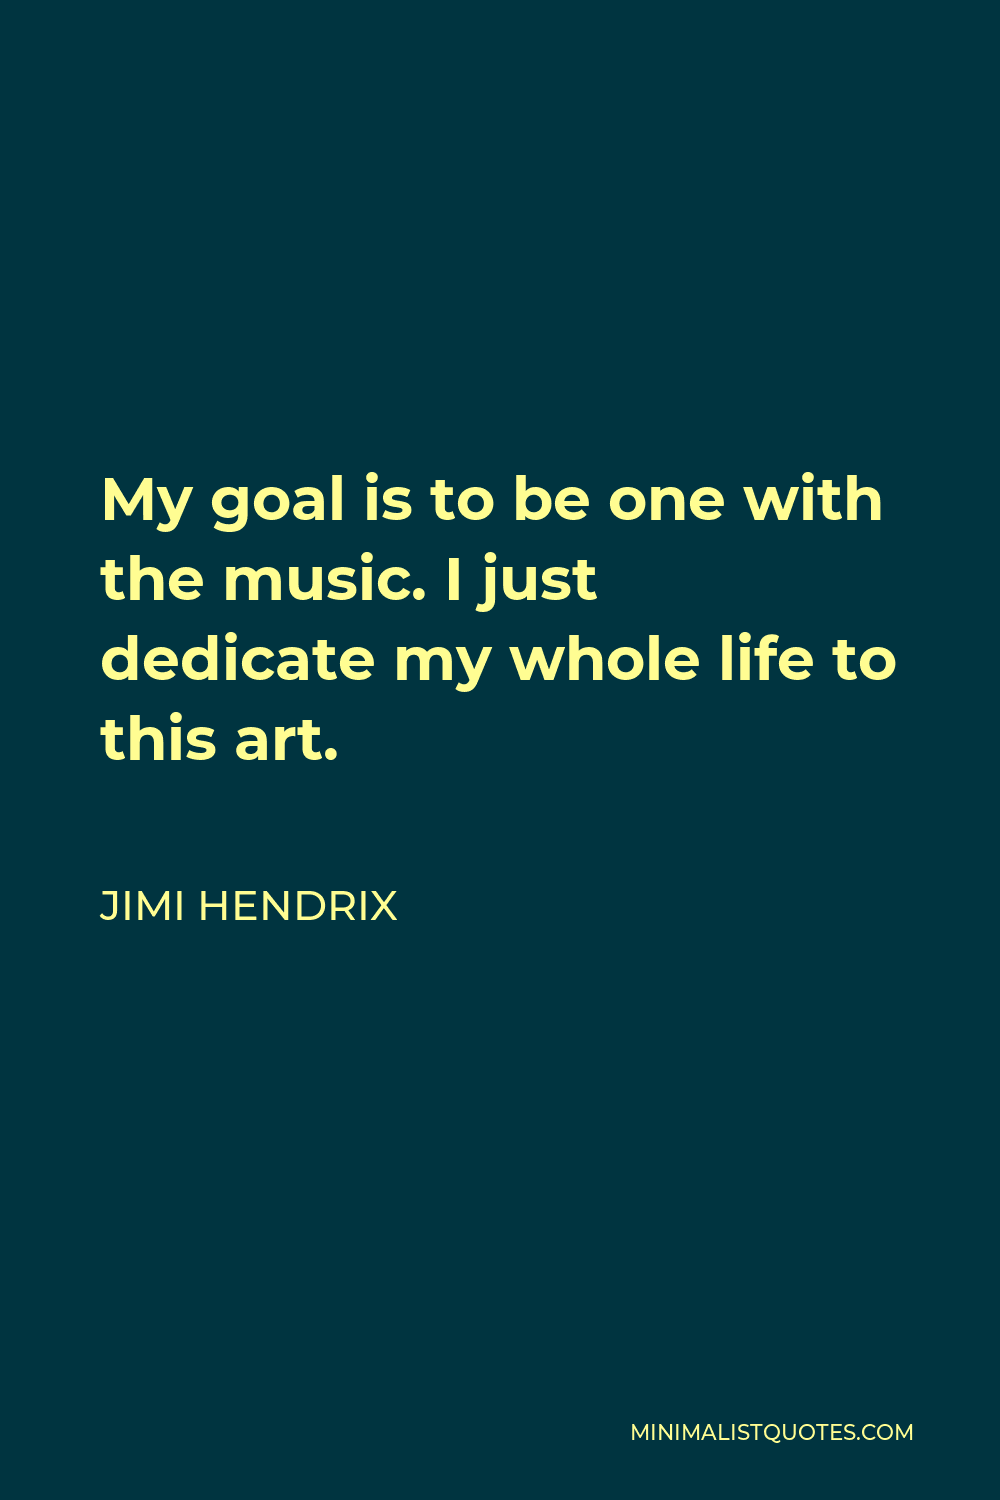 Jimi Hendrix Quote - My goal is to be one with the music. I just dedicate my whole life to this art.